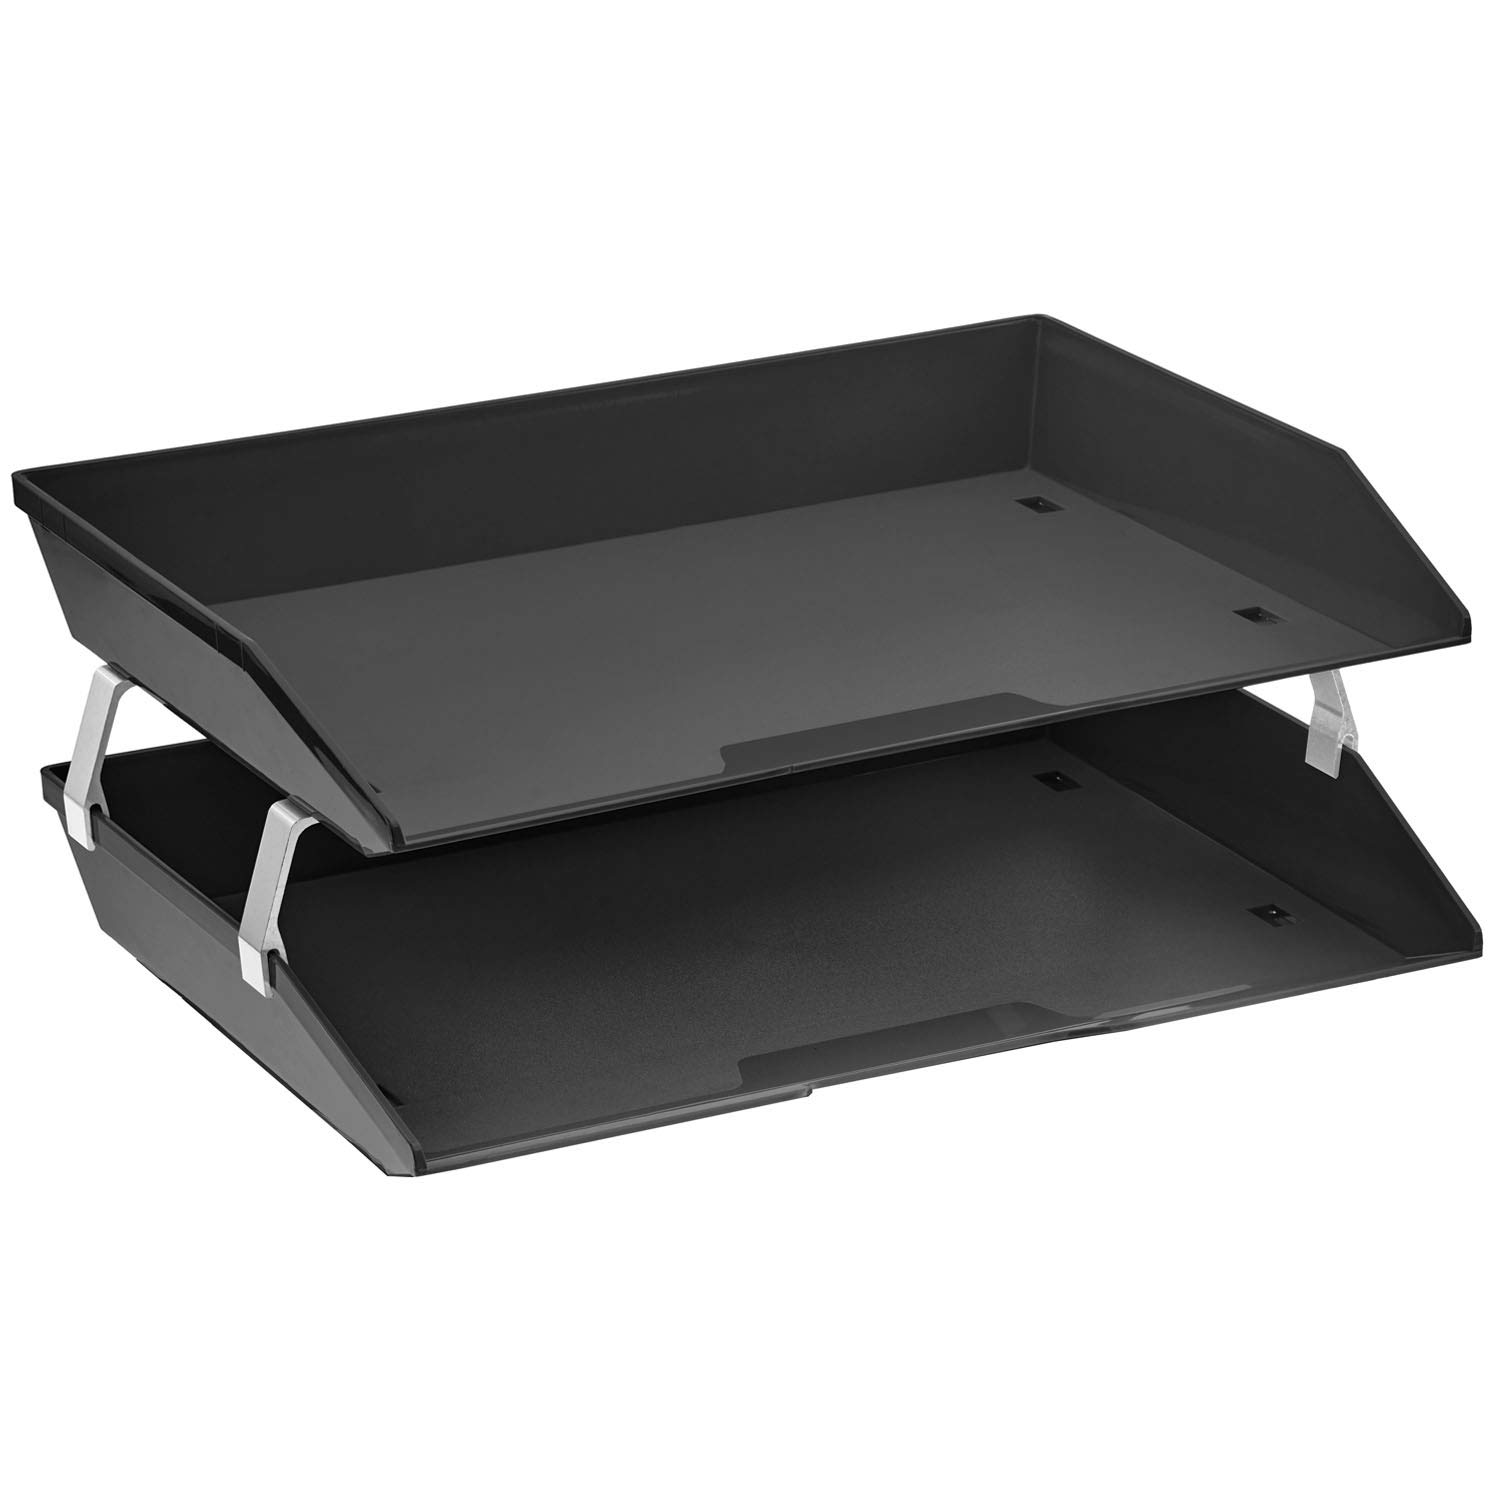 Acrimet Facility 2 Tiers Double Letter Tray A4 (Black Color) 253.4